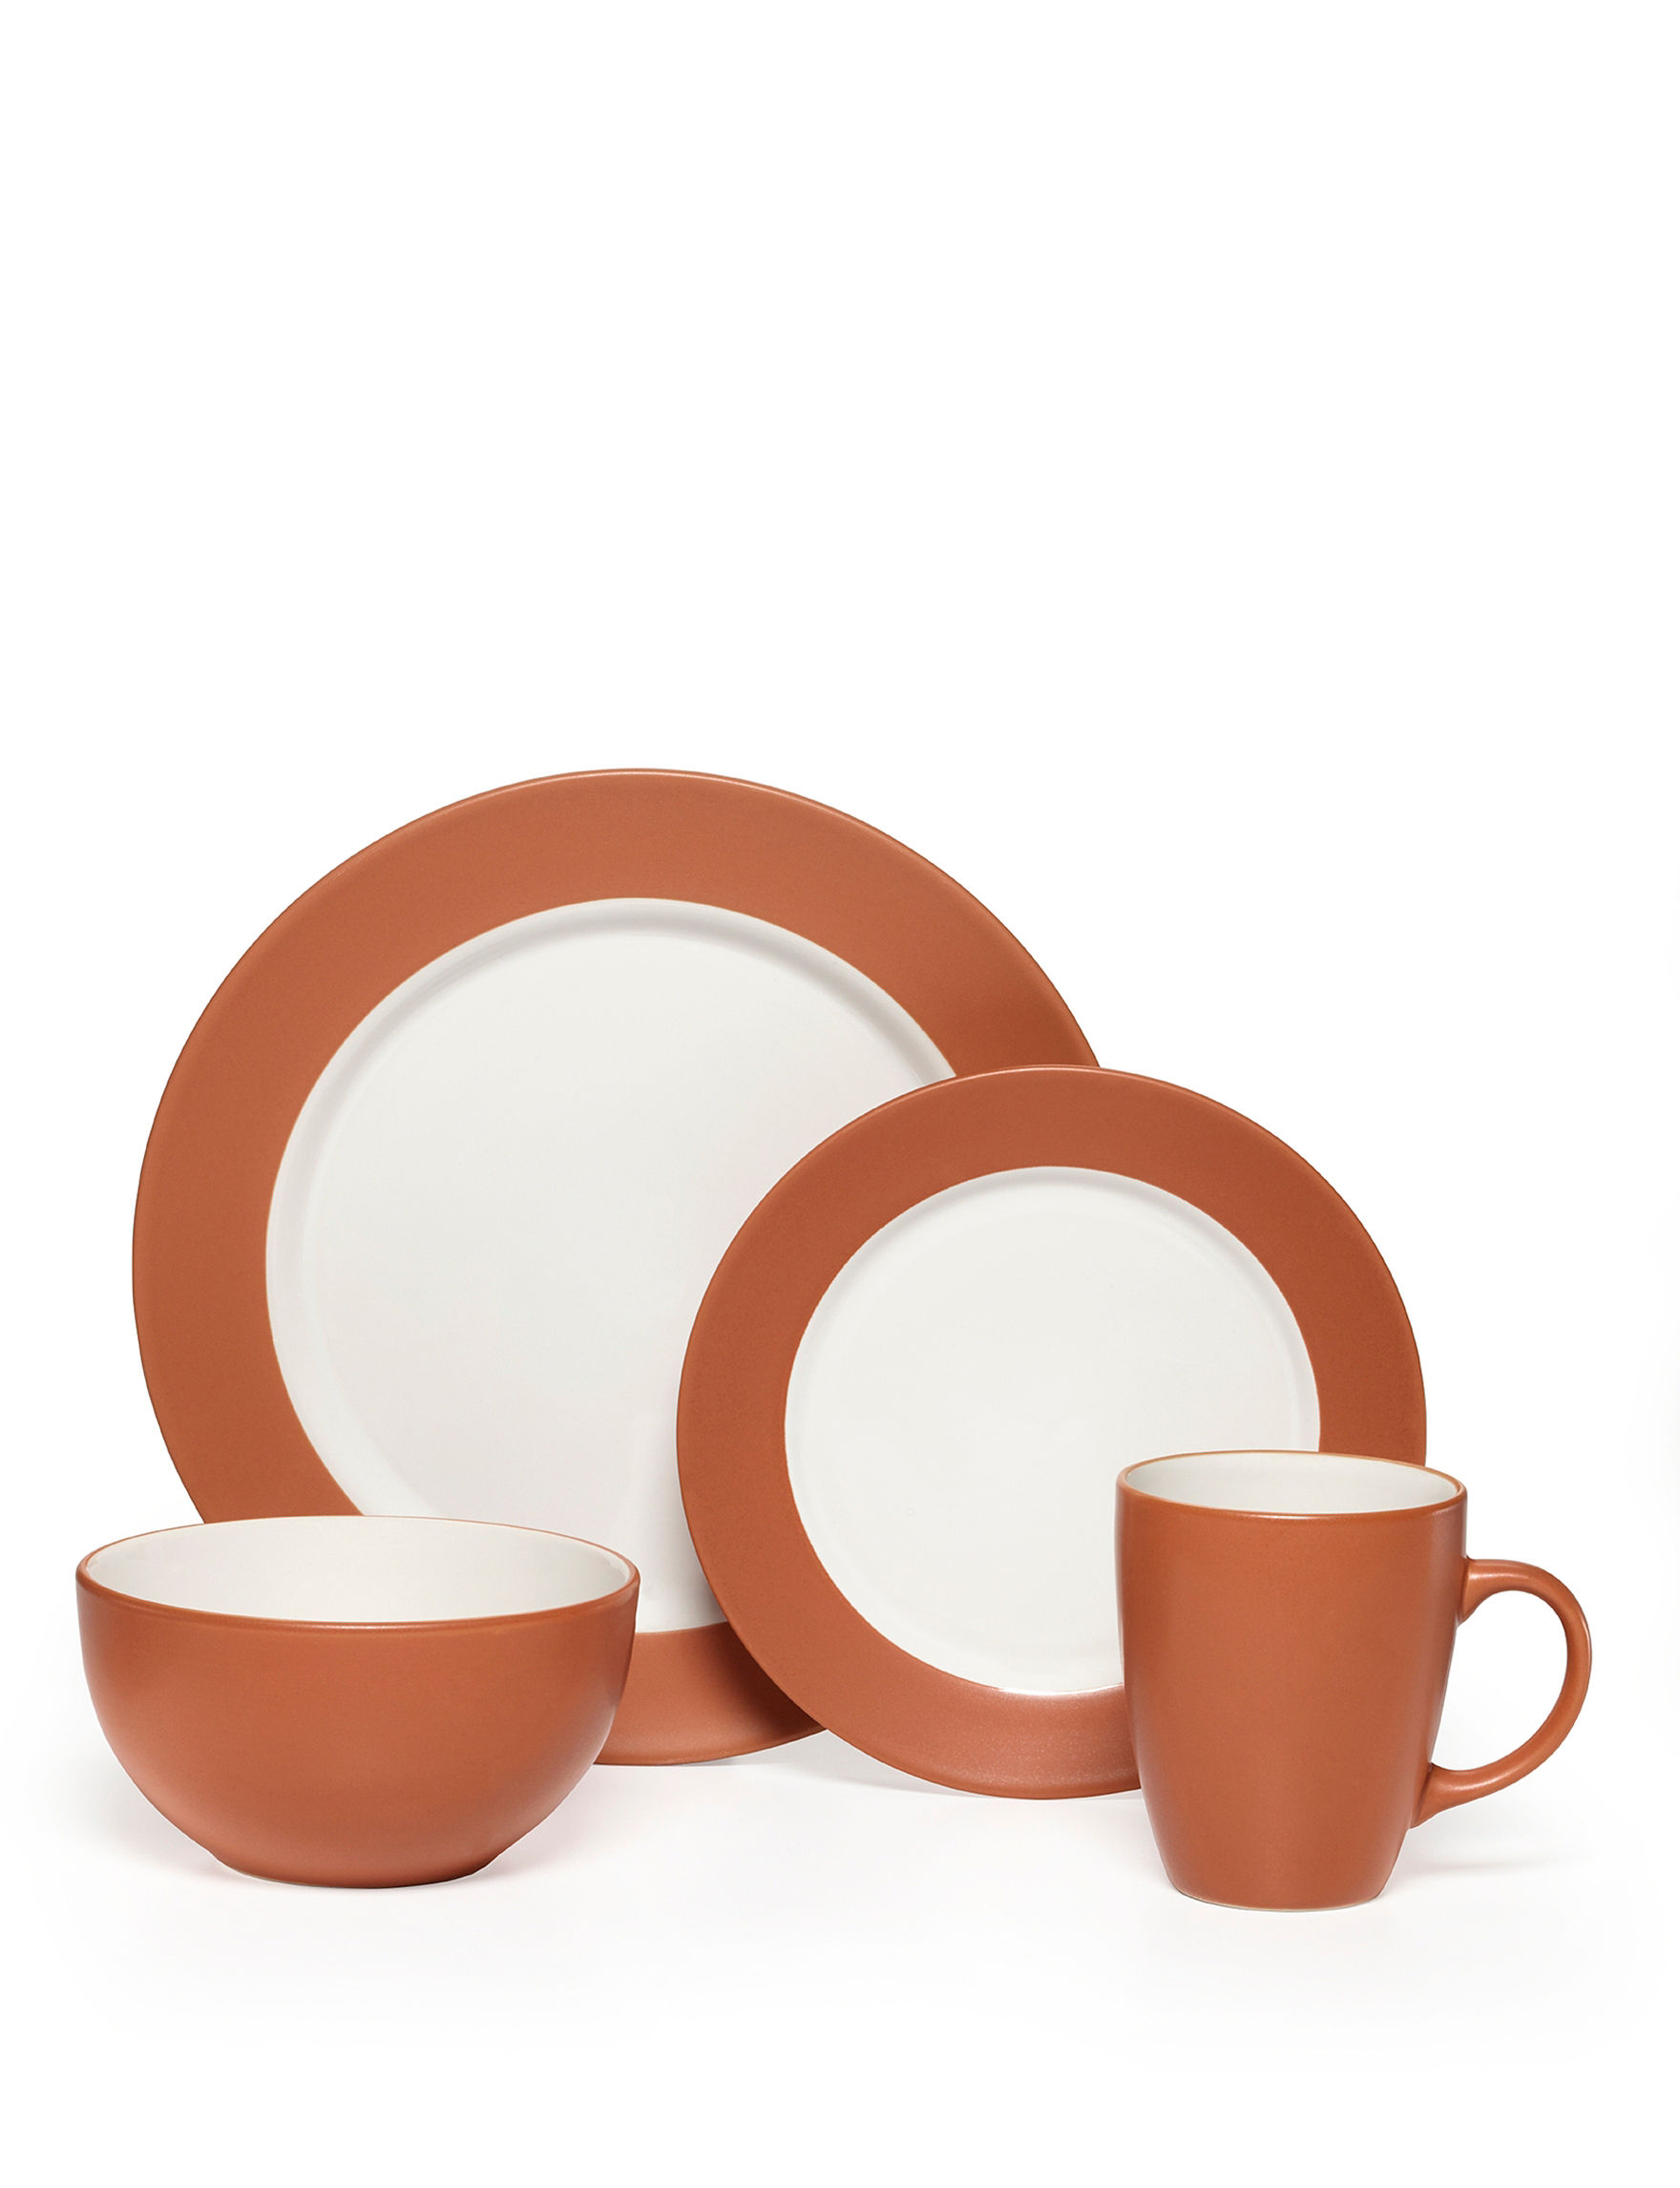 Pfaltzgraff Orange Dinnerware Sets Dinnerware